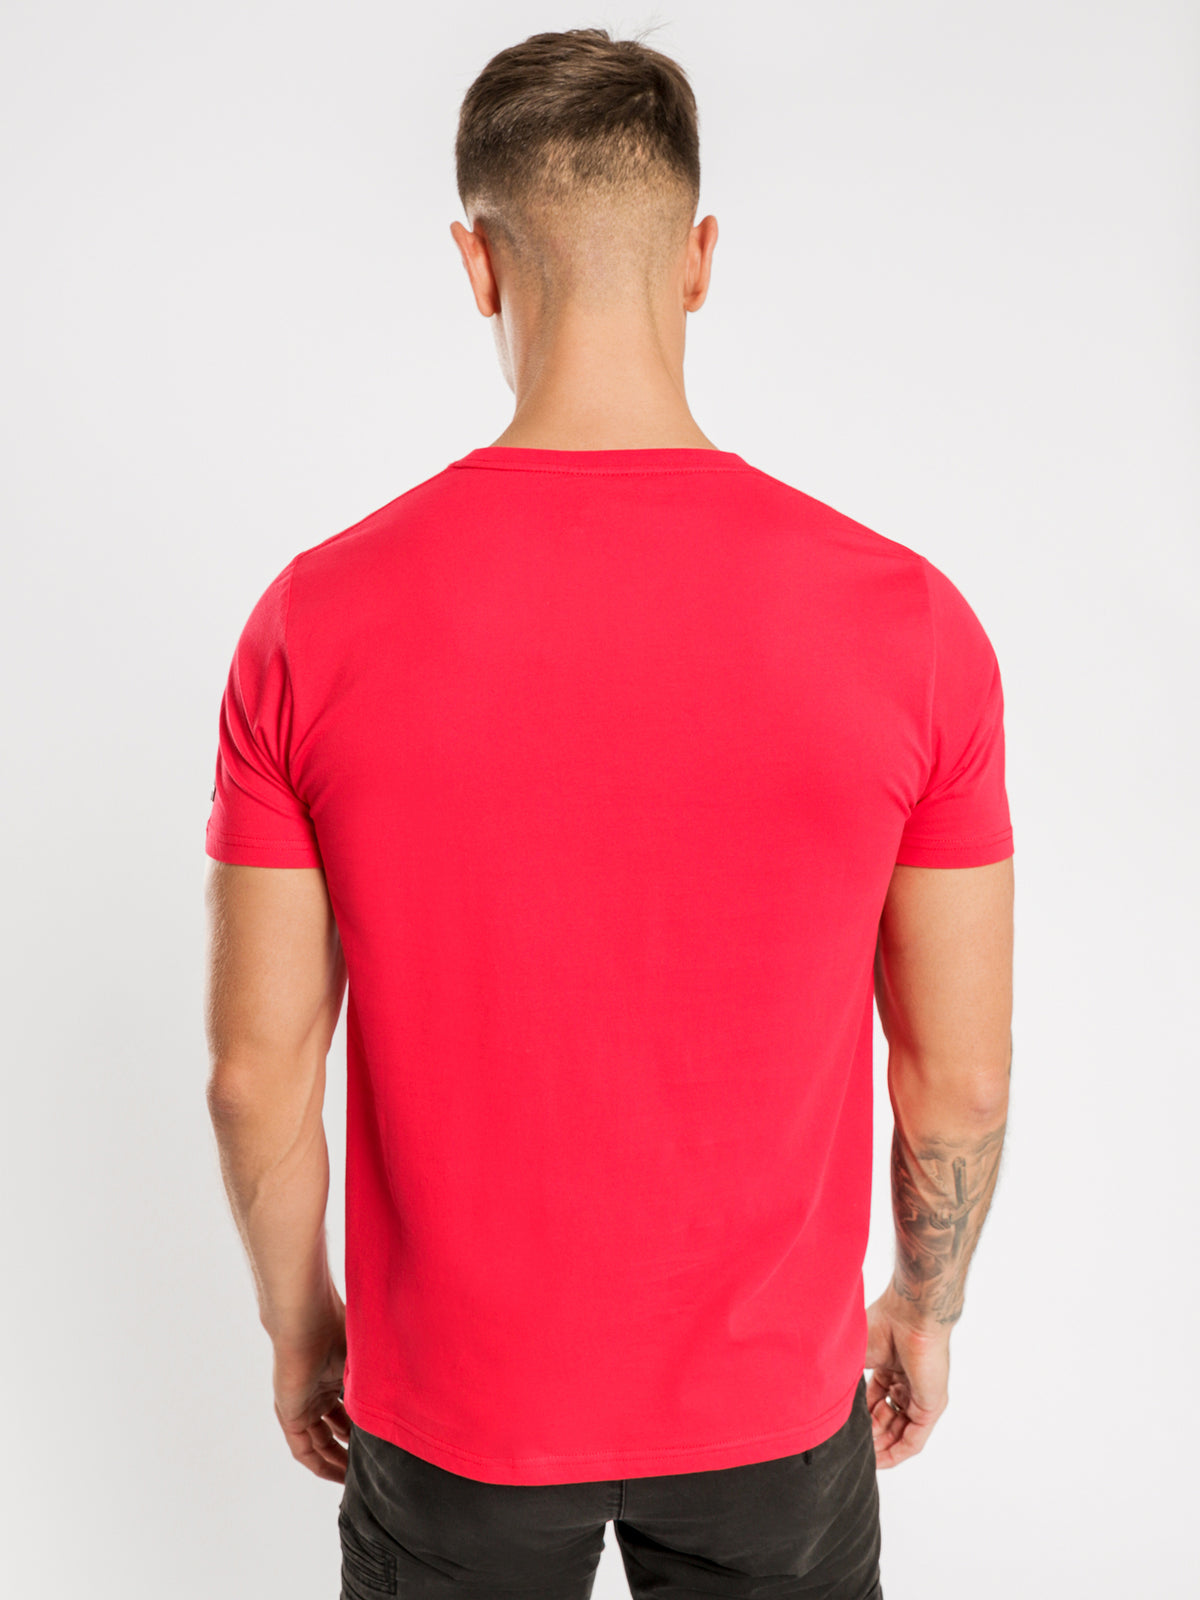 Jenkins T-Shirt in Fire Red